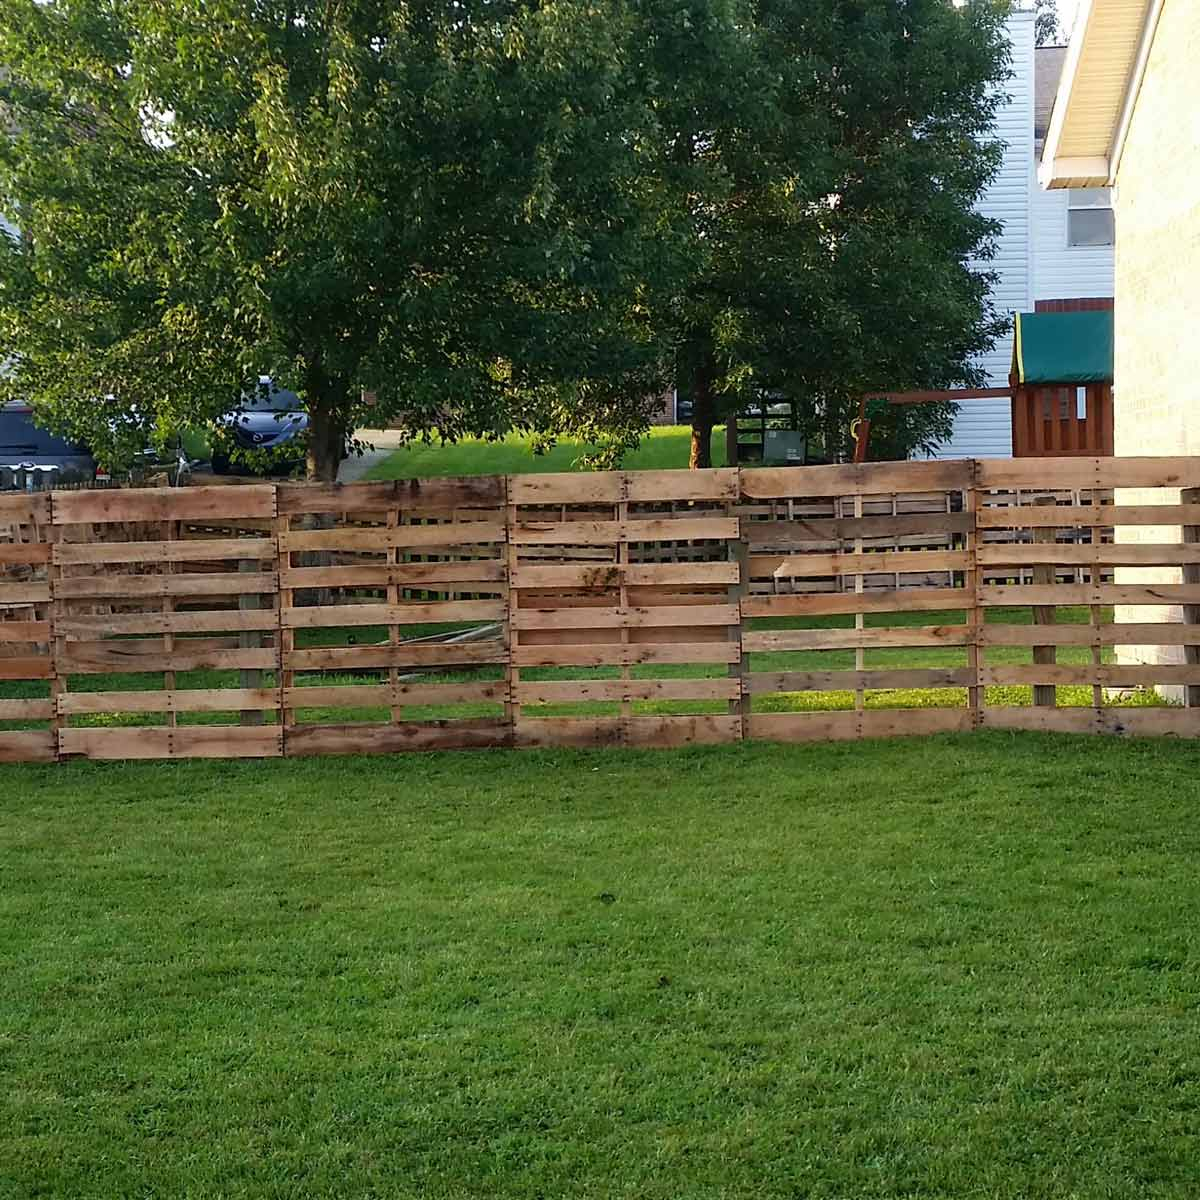 Yard Fencing 10 Modern Fence Ideas Family Handyman pertaining to 13 Clever Concepts of How to Craft Privacy Fences For Backyards